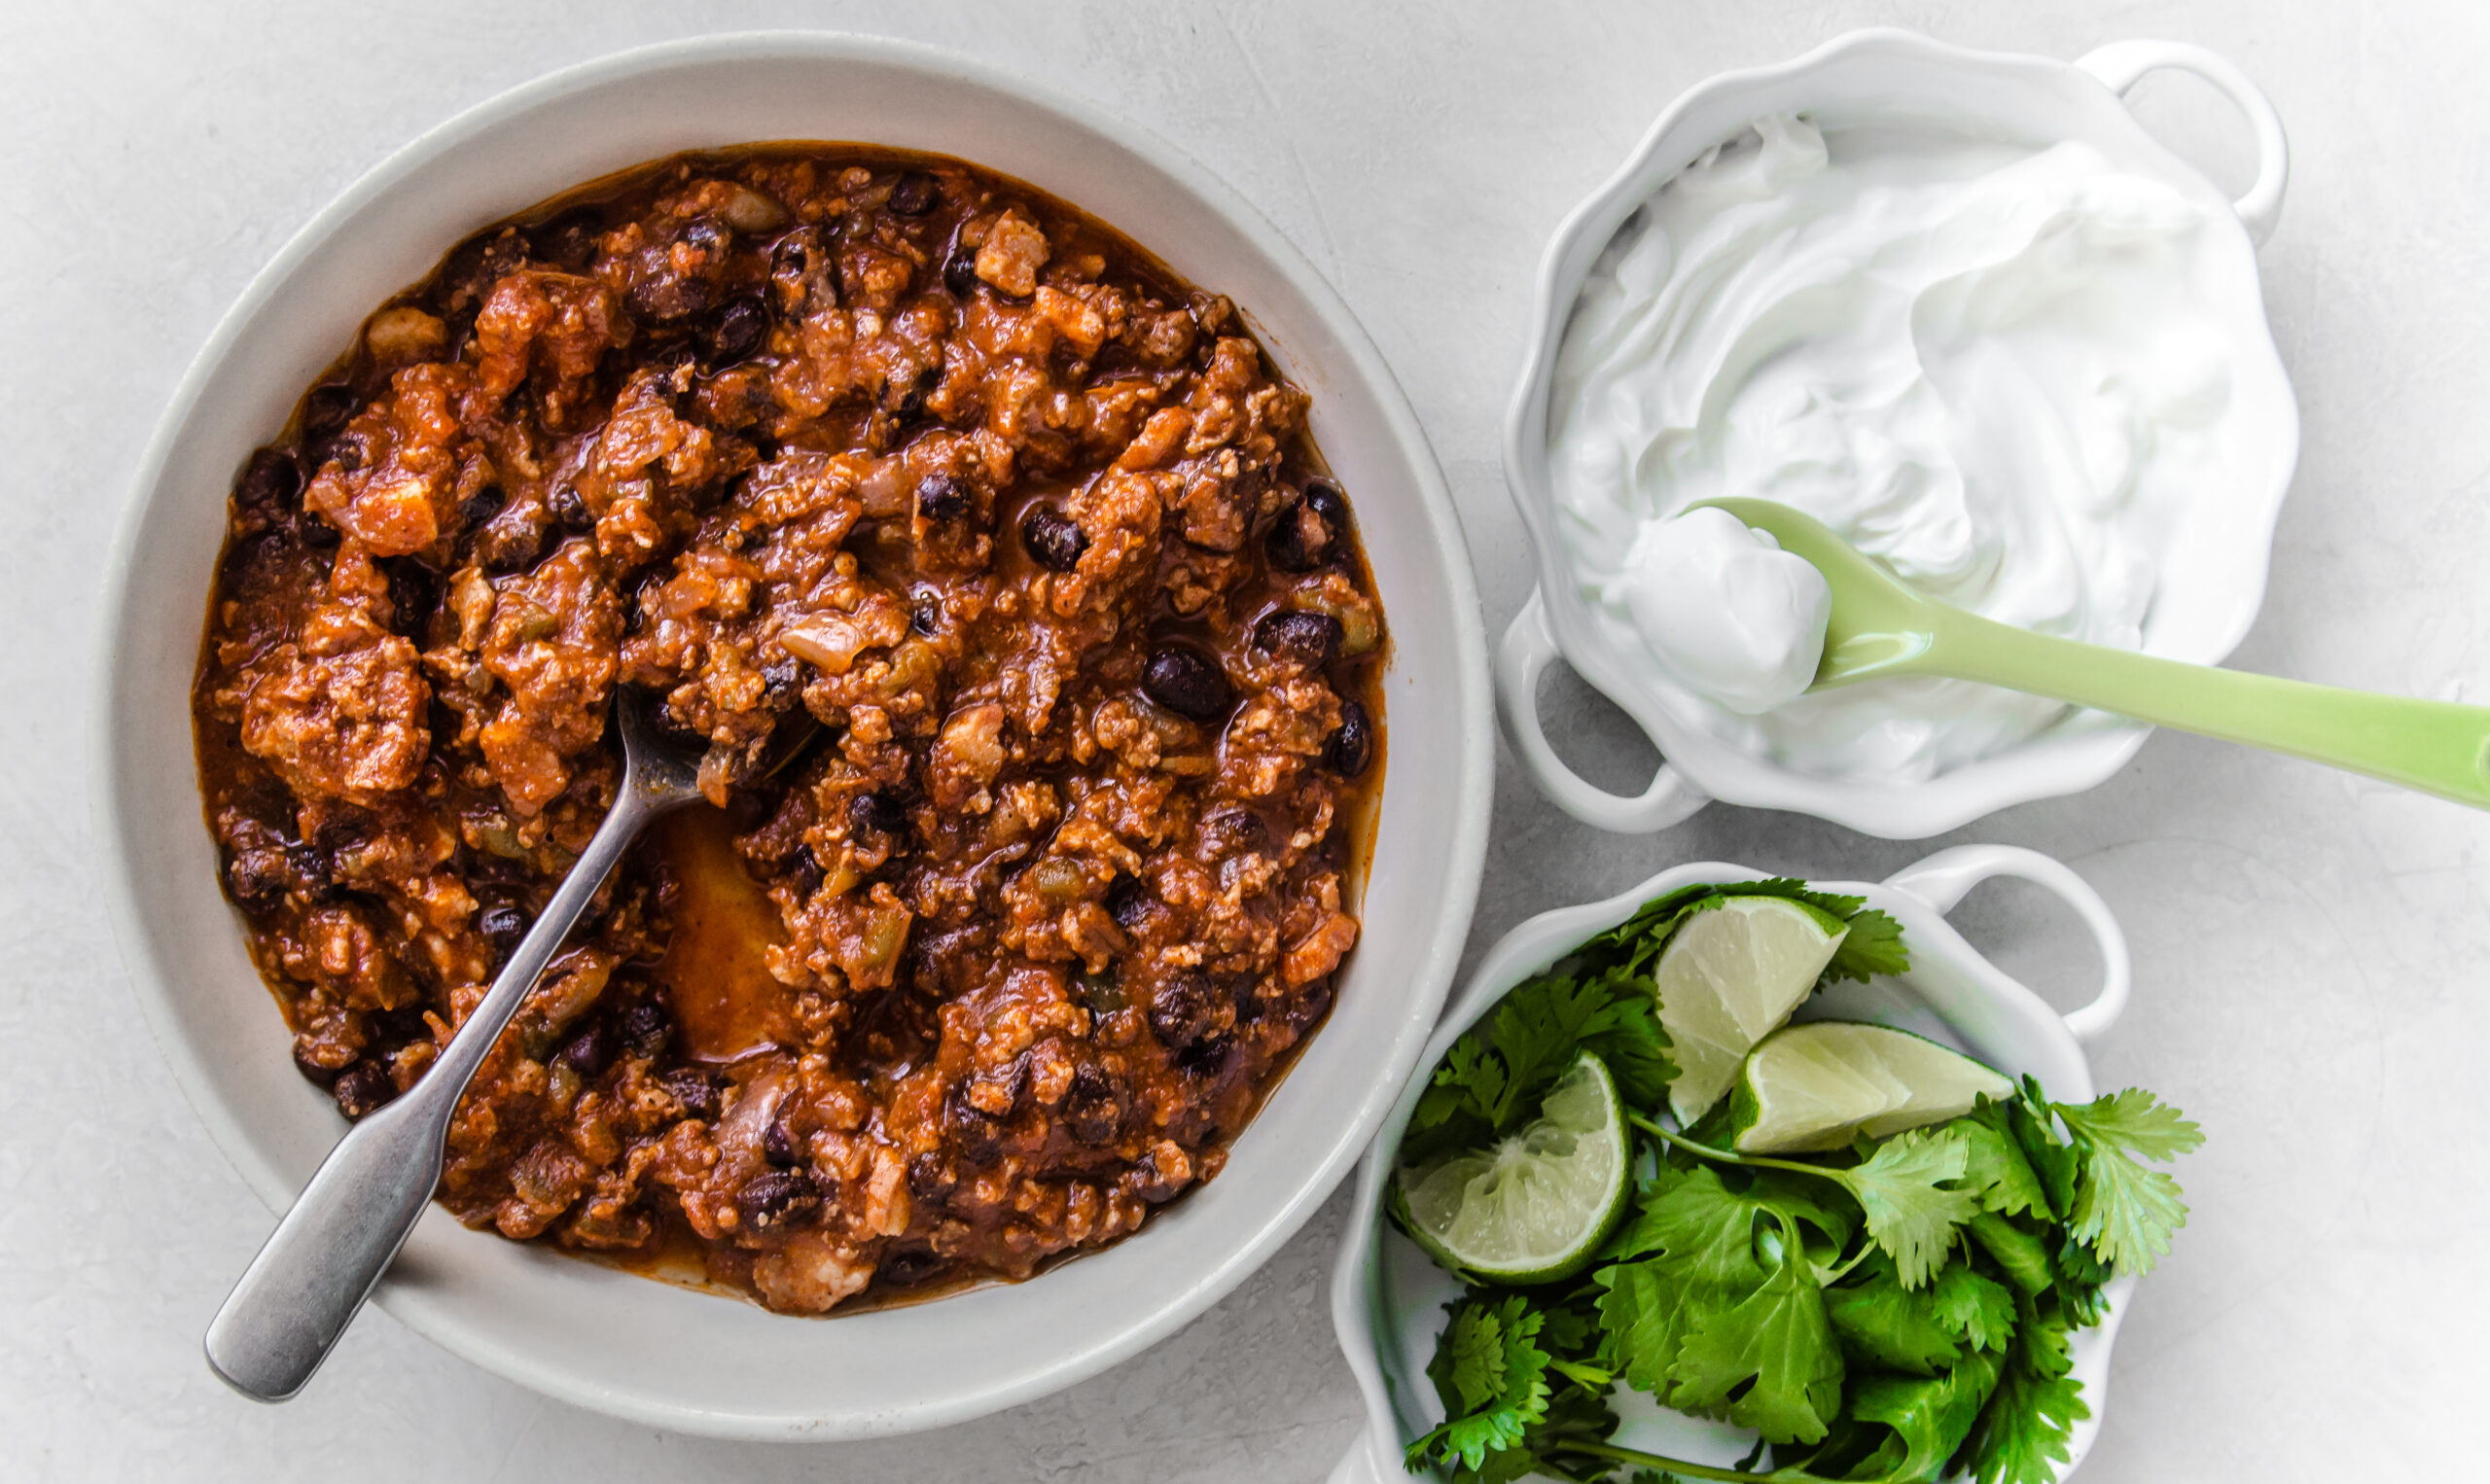 Ground Pork and Black Bean Chili 12×7.1 (1 of 1)